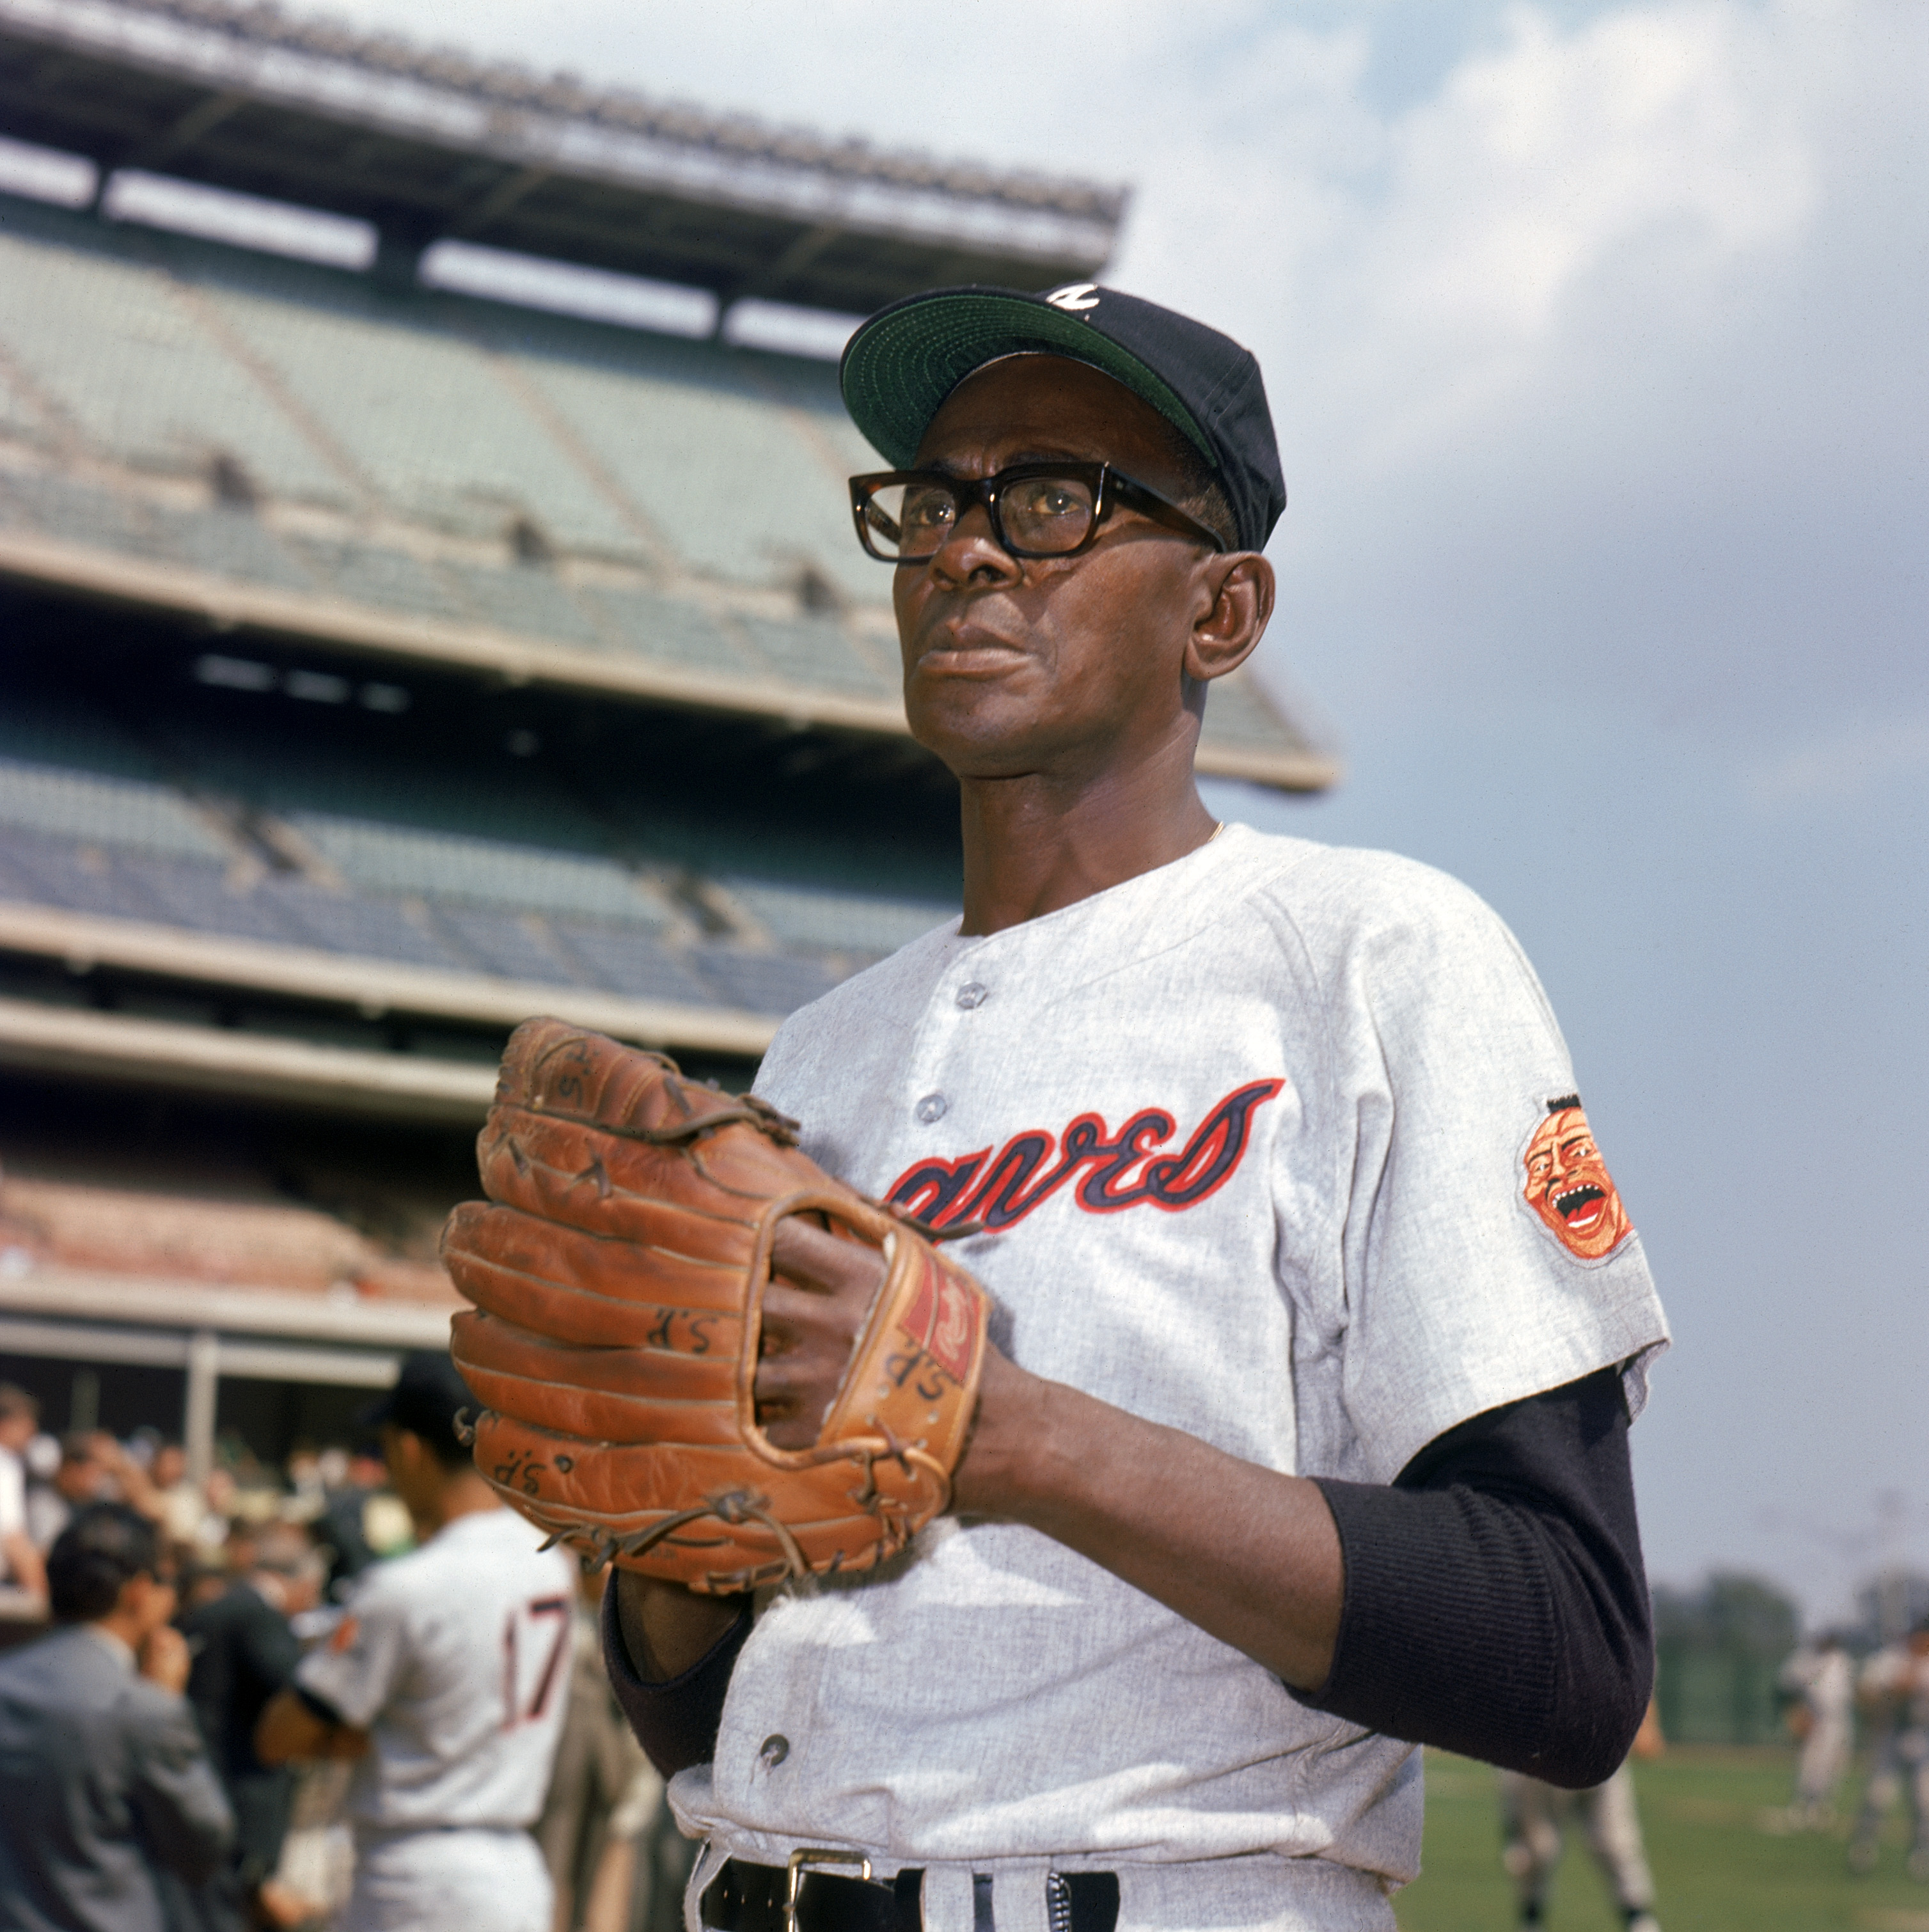 Brief history on satchel paige a baseball player